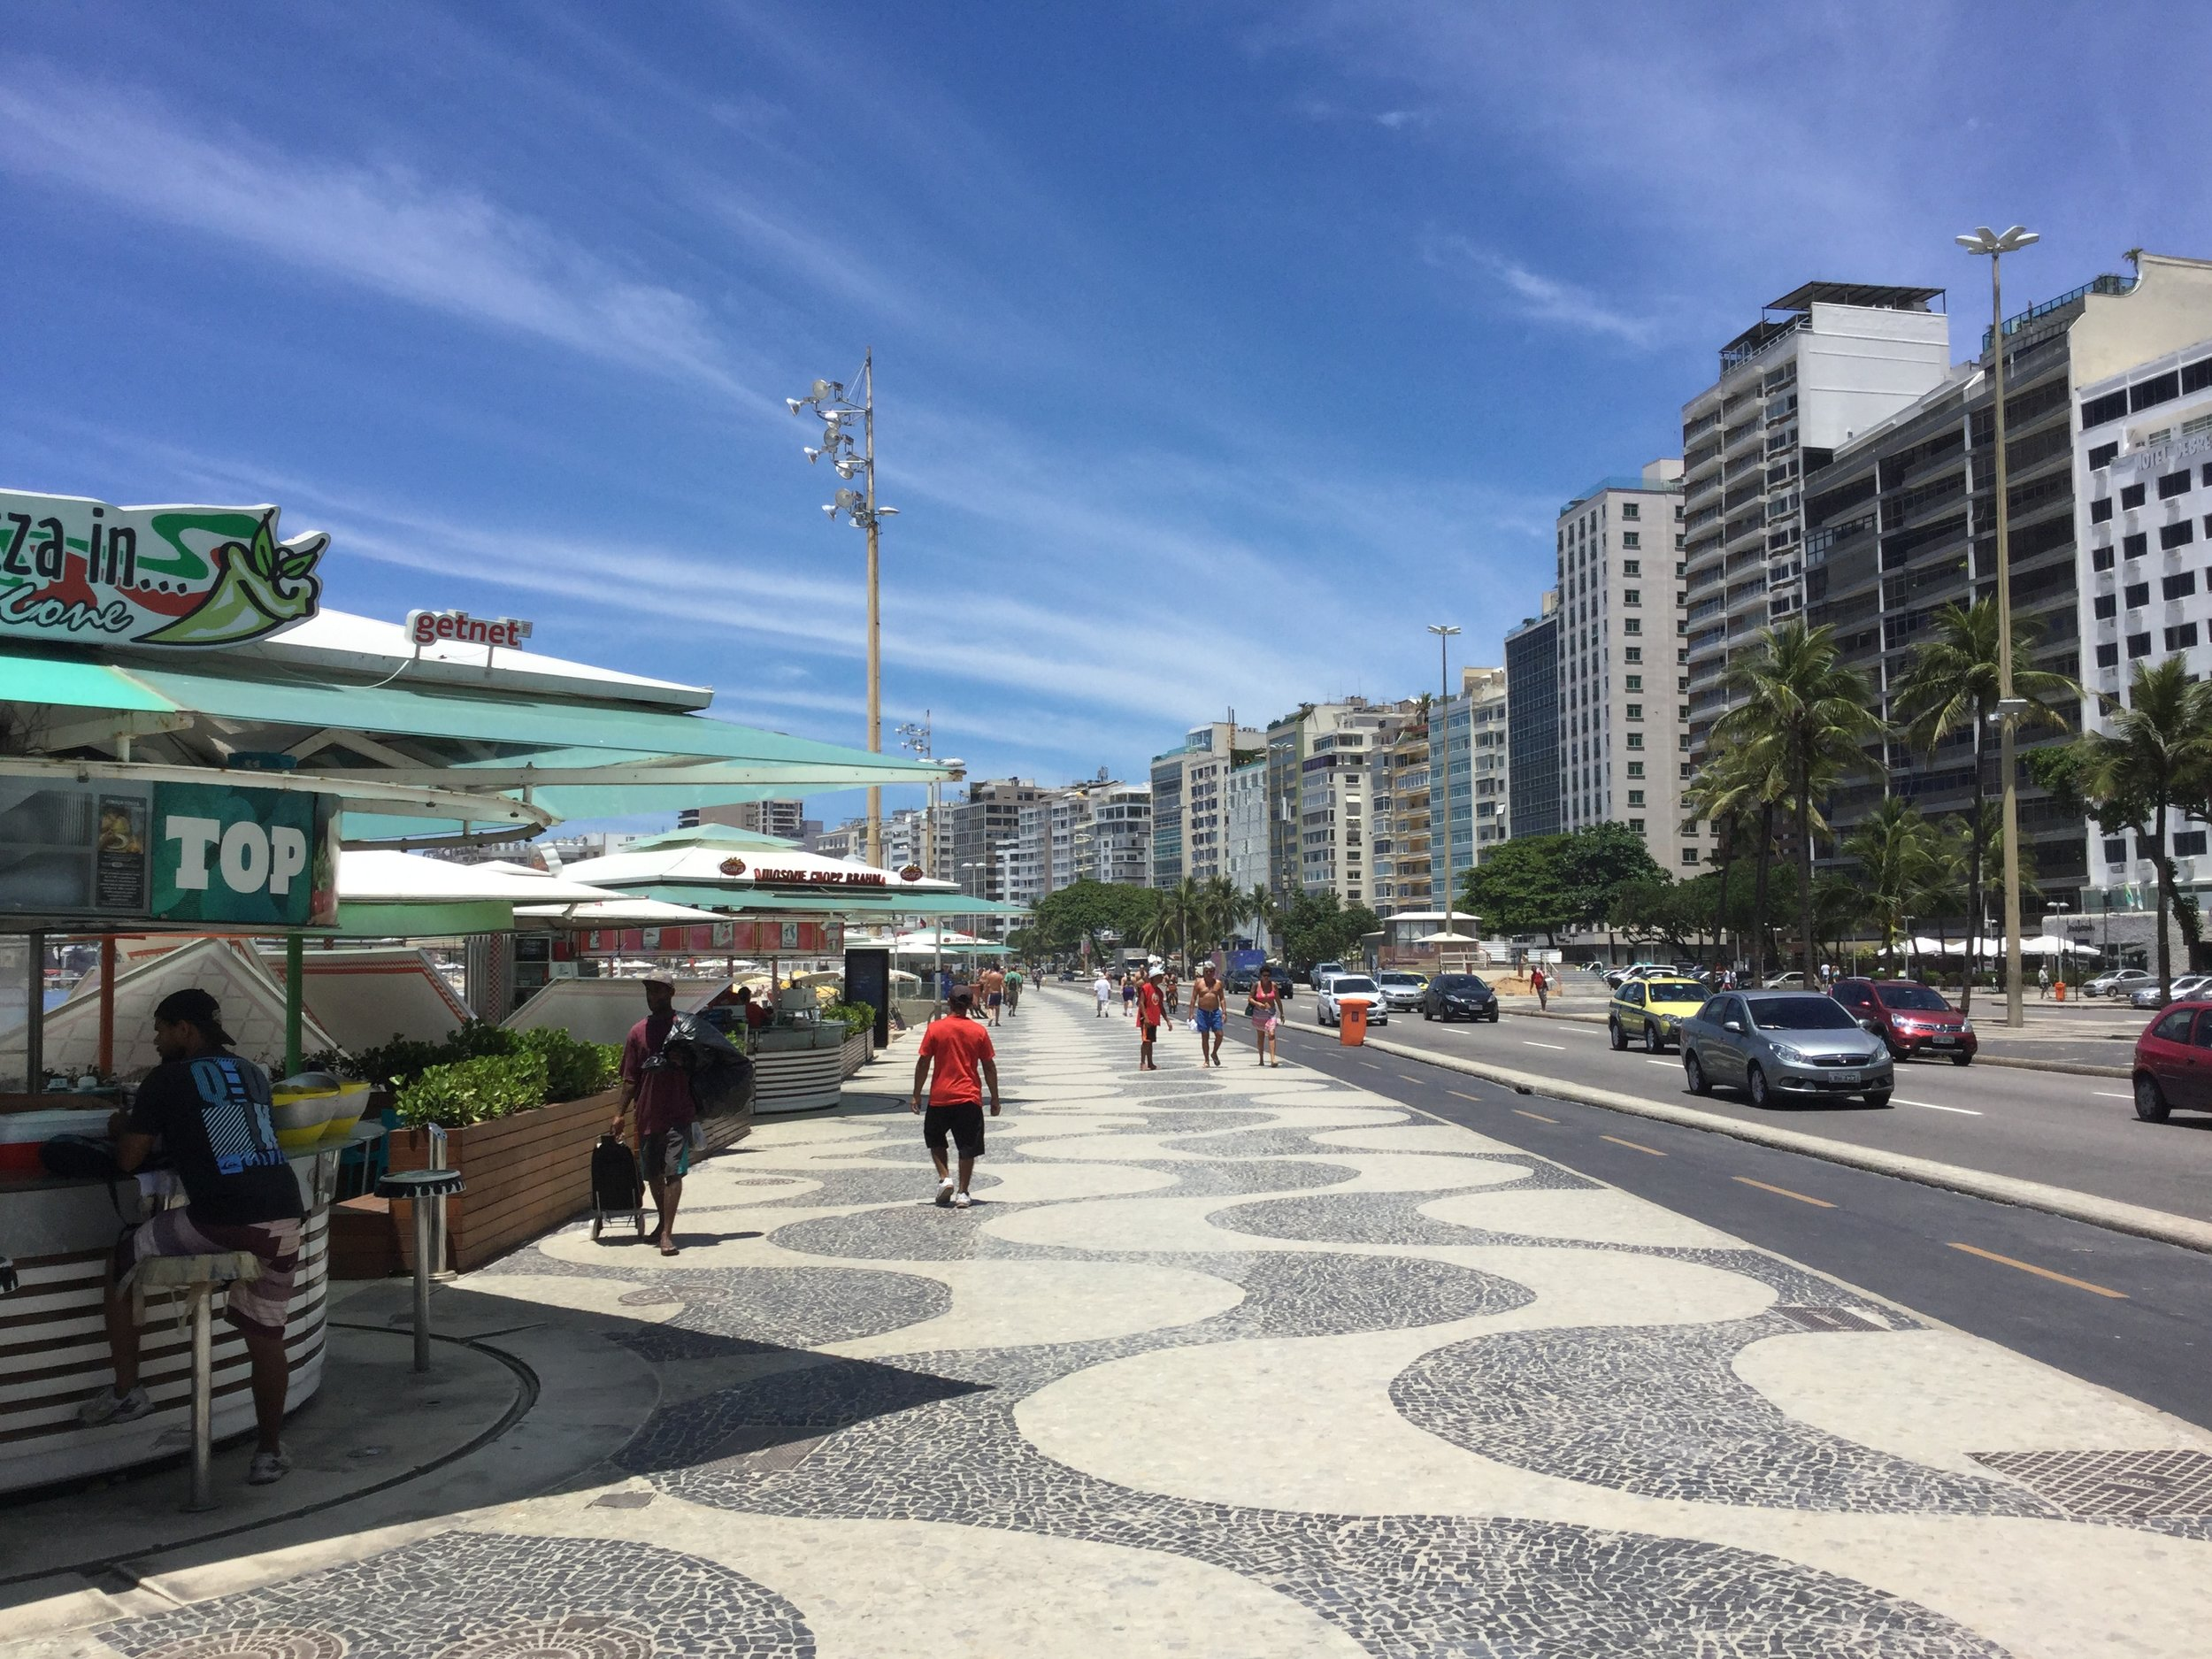 This type of sidewalk mosaic is a Rio specialty. The stone is called 'Portuguese stone'.